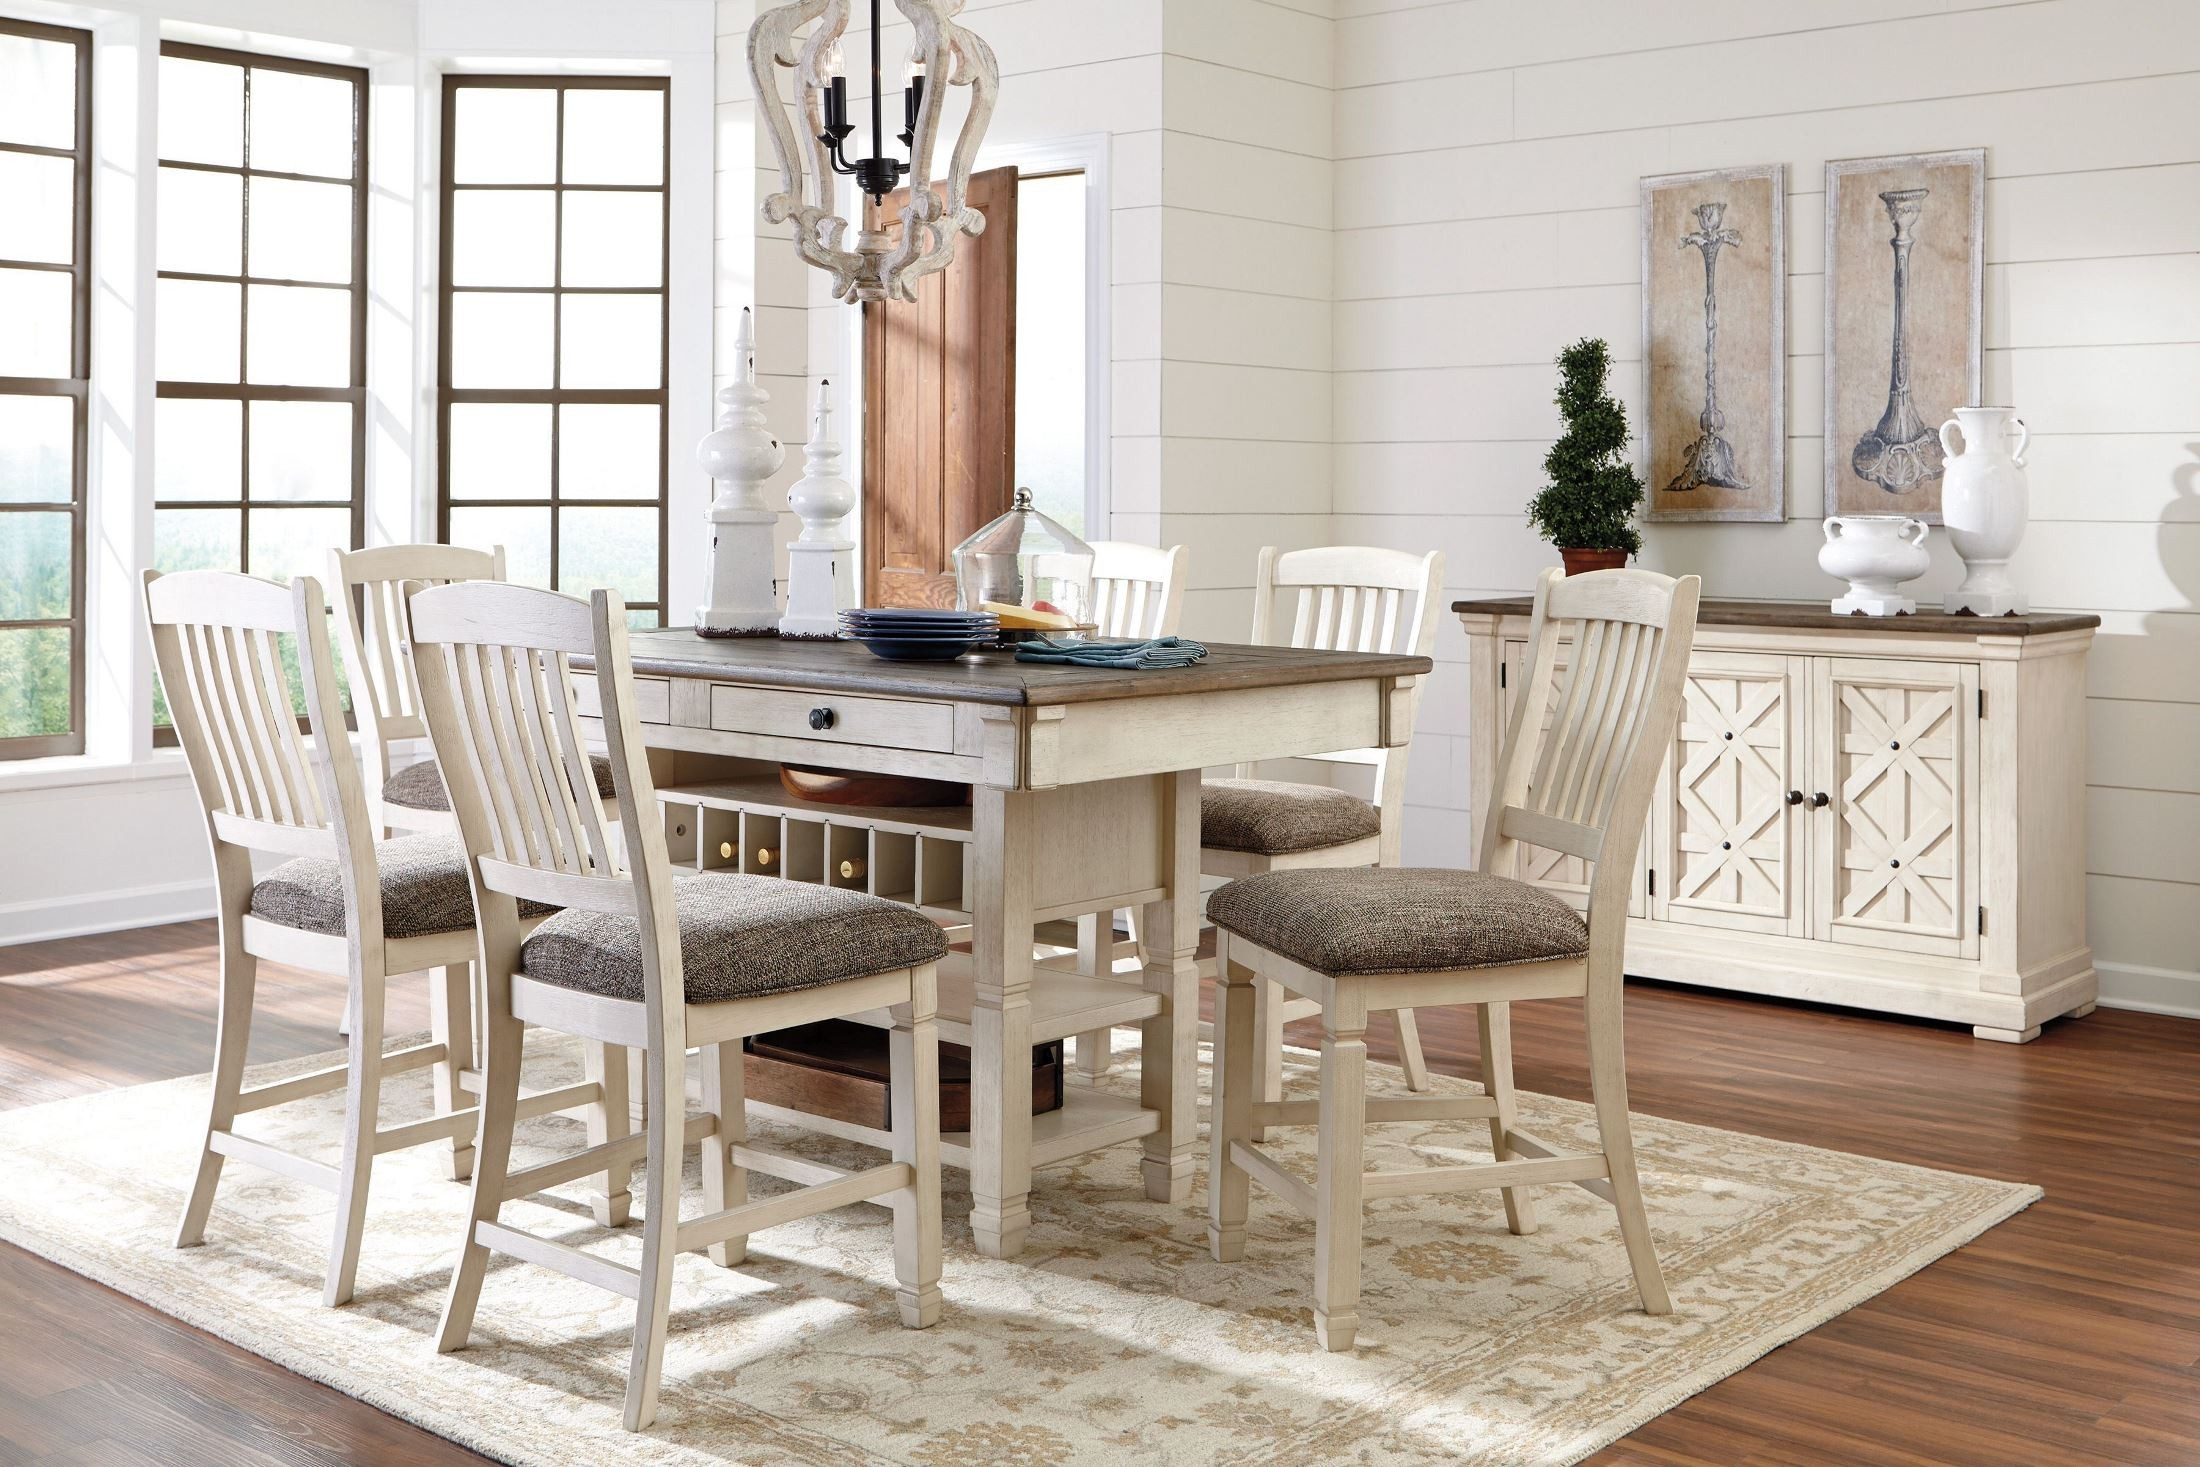 White Dining Table Set Bolanburg White And Gray Rectangular Counter Height Dining